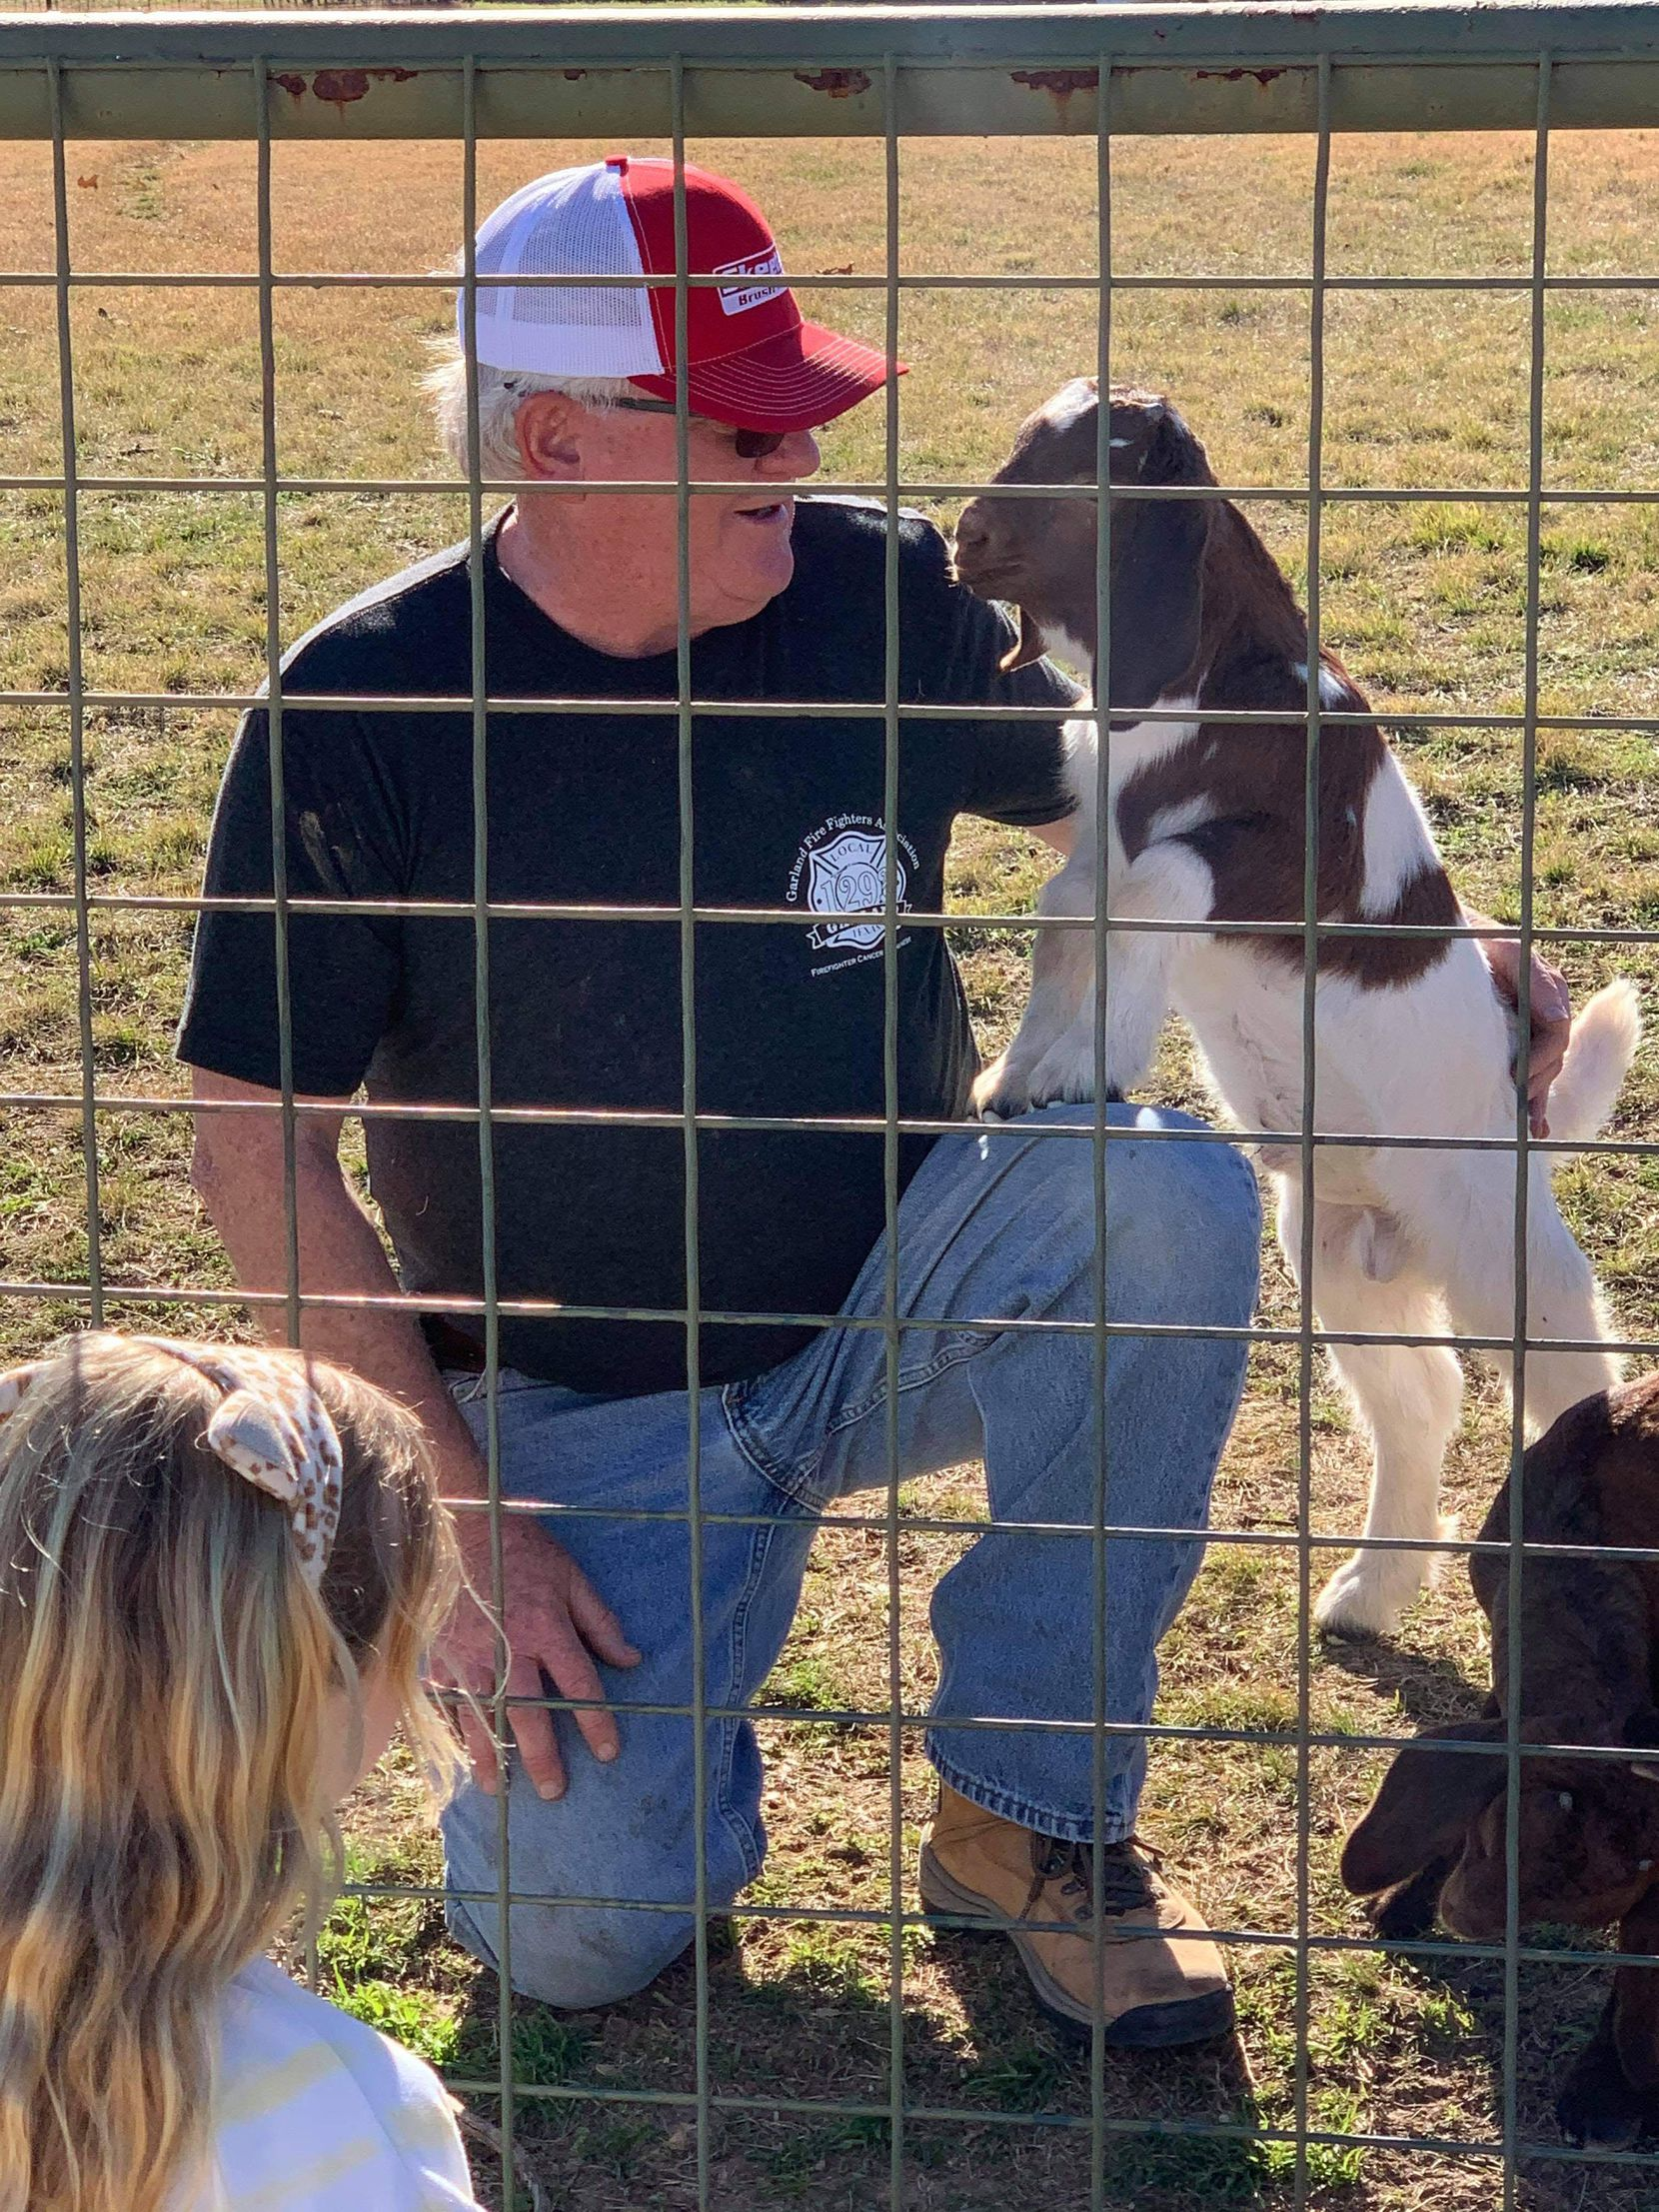 Current owner of Todd Goat Farm Mike Baker speaks with a visitor at the land's fence line.